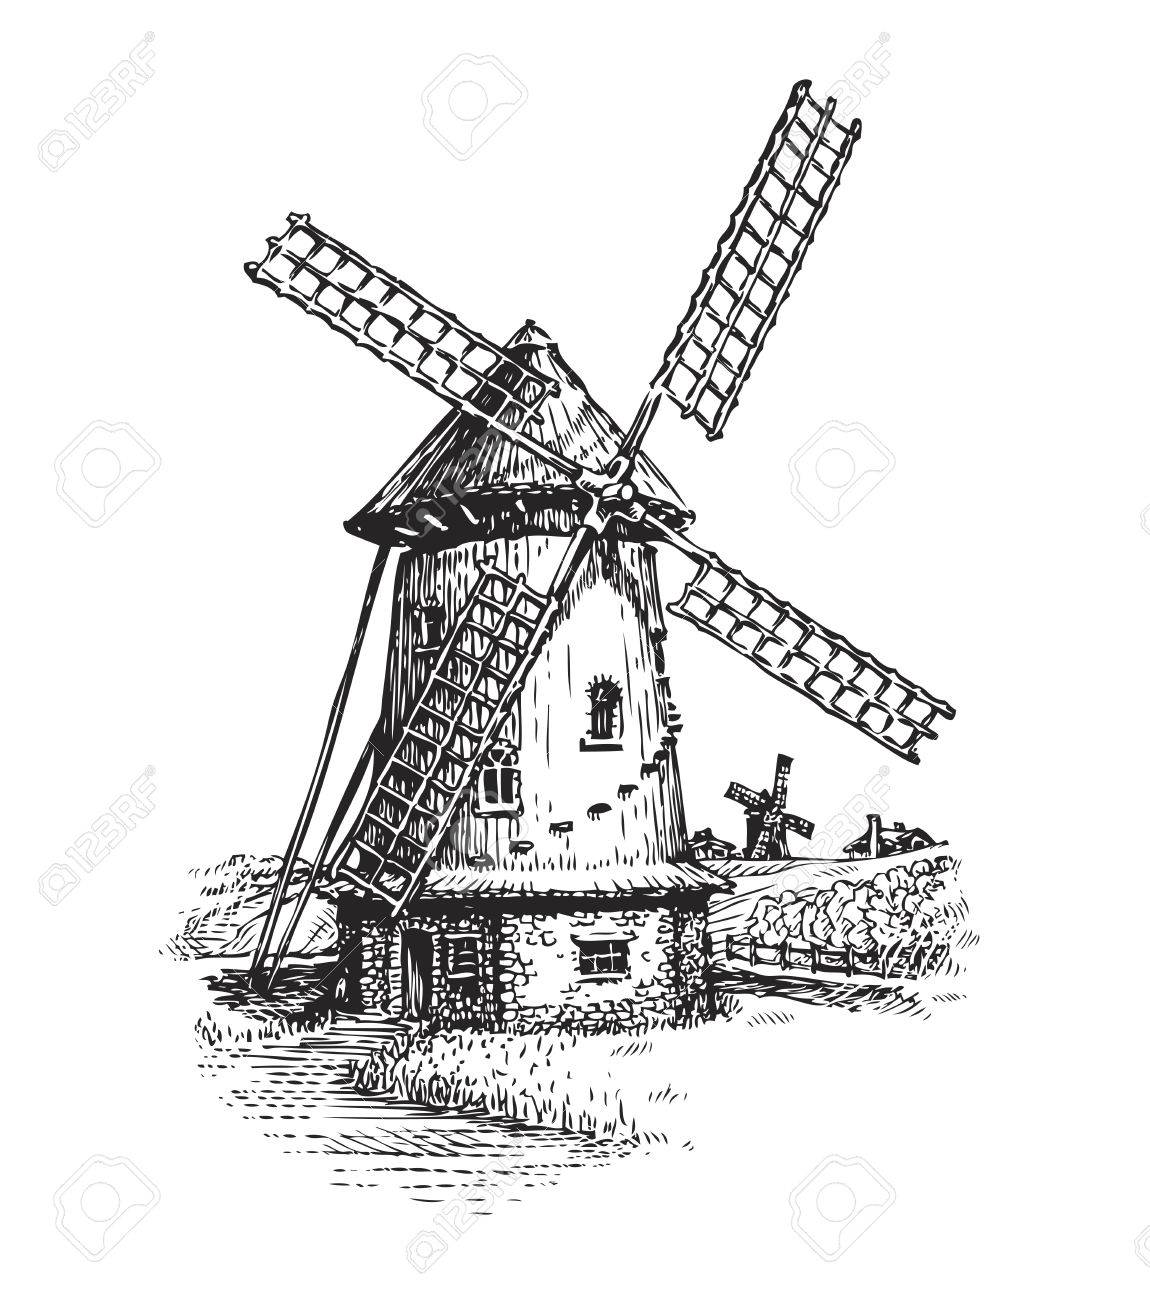 Windmill. Hand drawn vintage sketch vector illustration isolated on white background - 67209305